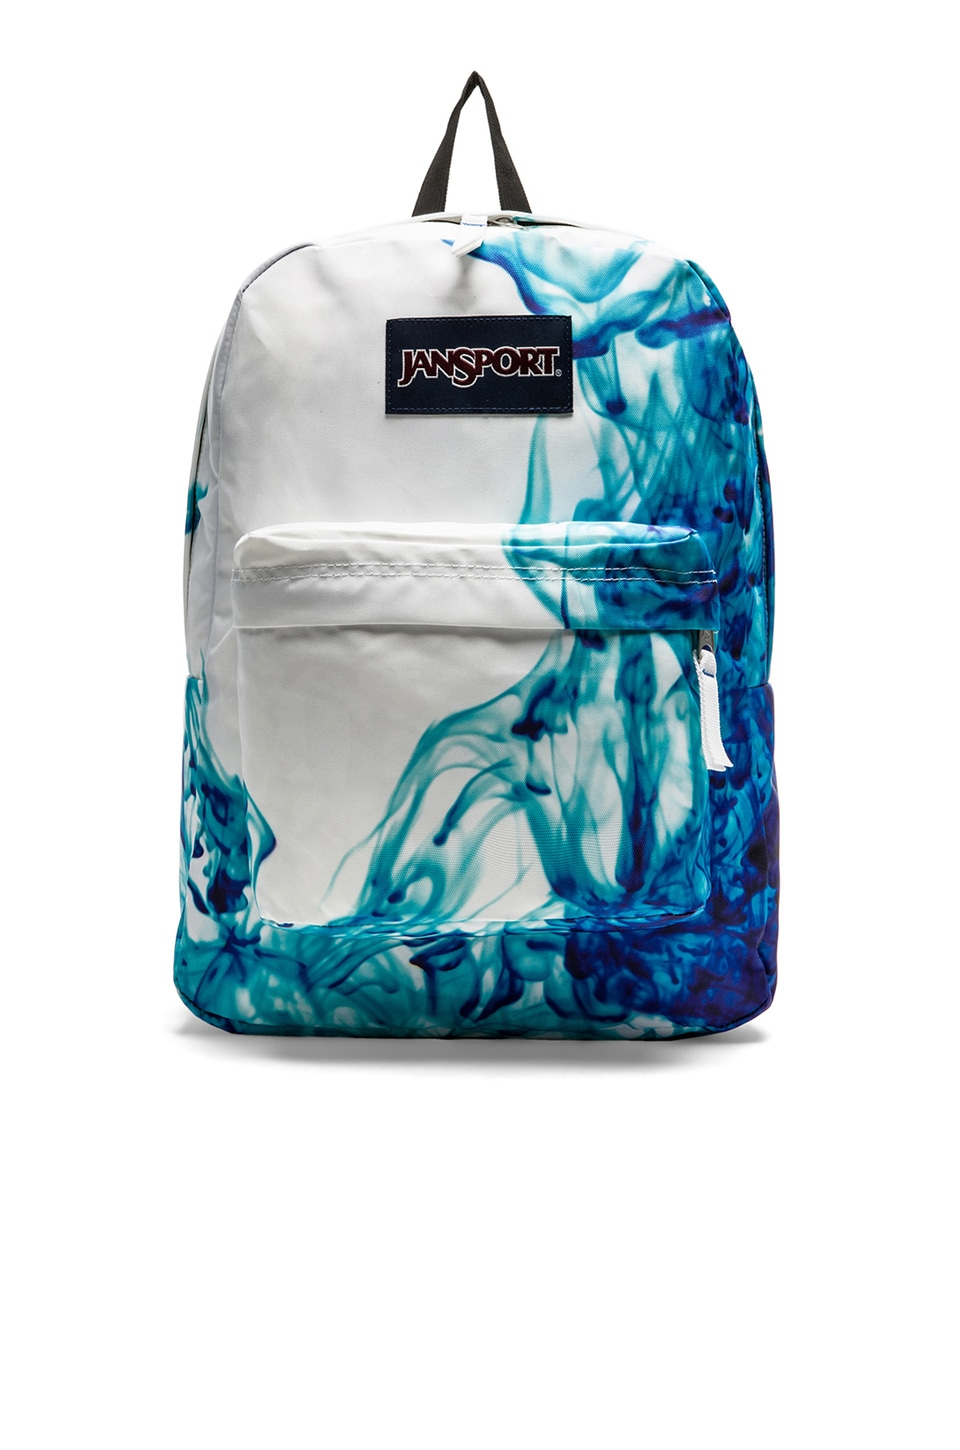 Jansport Superbreak Backpack in Blue Drip Dye | REVOLVE